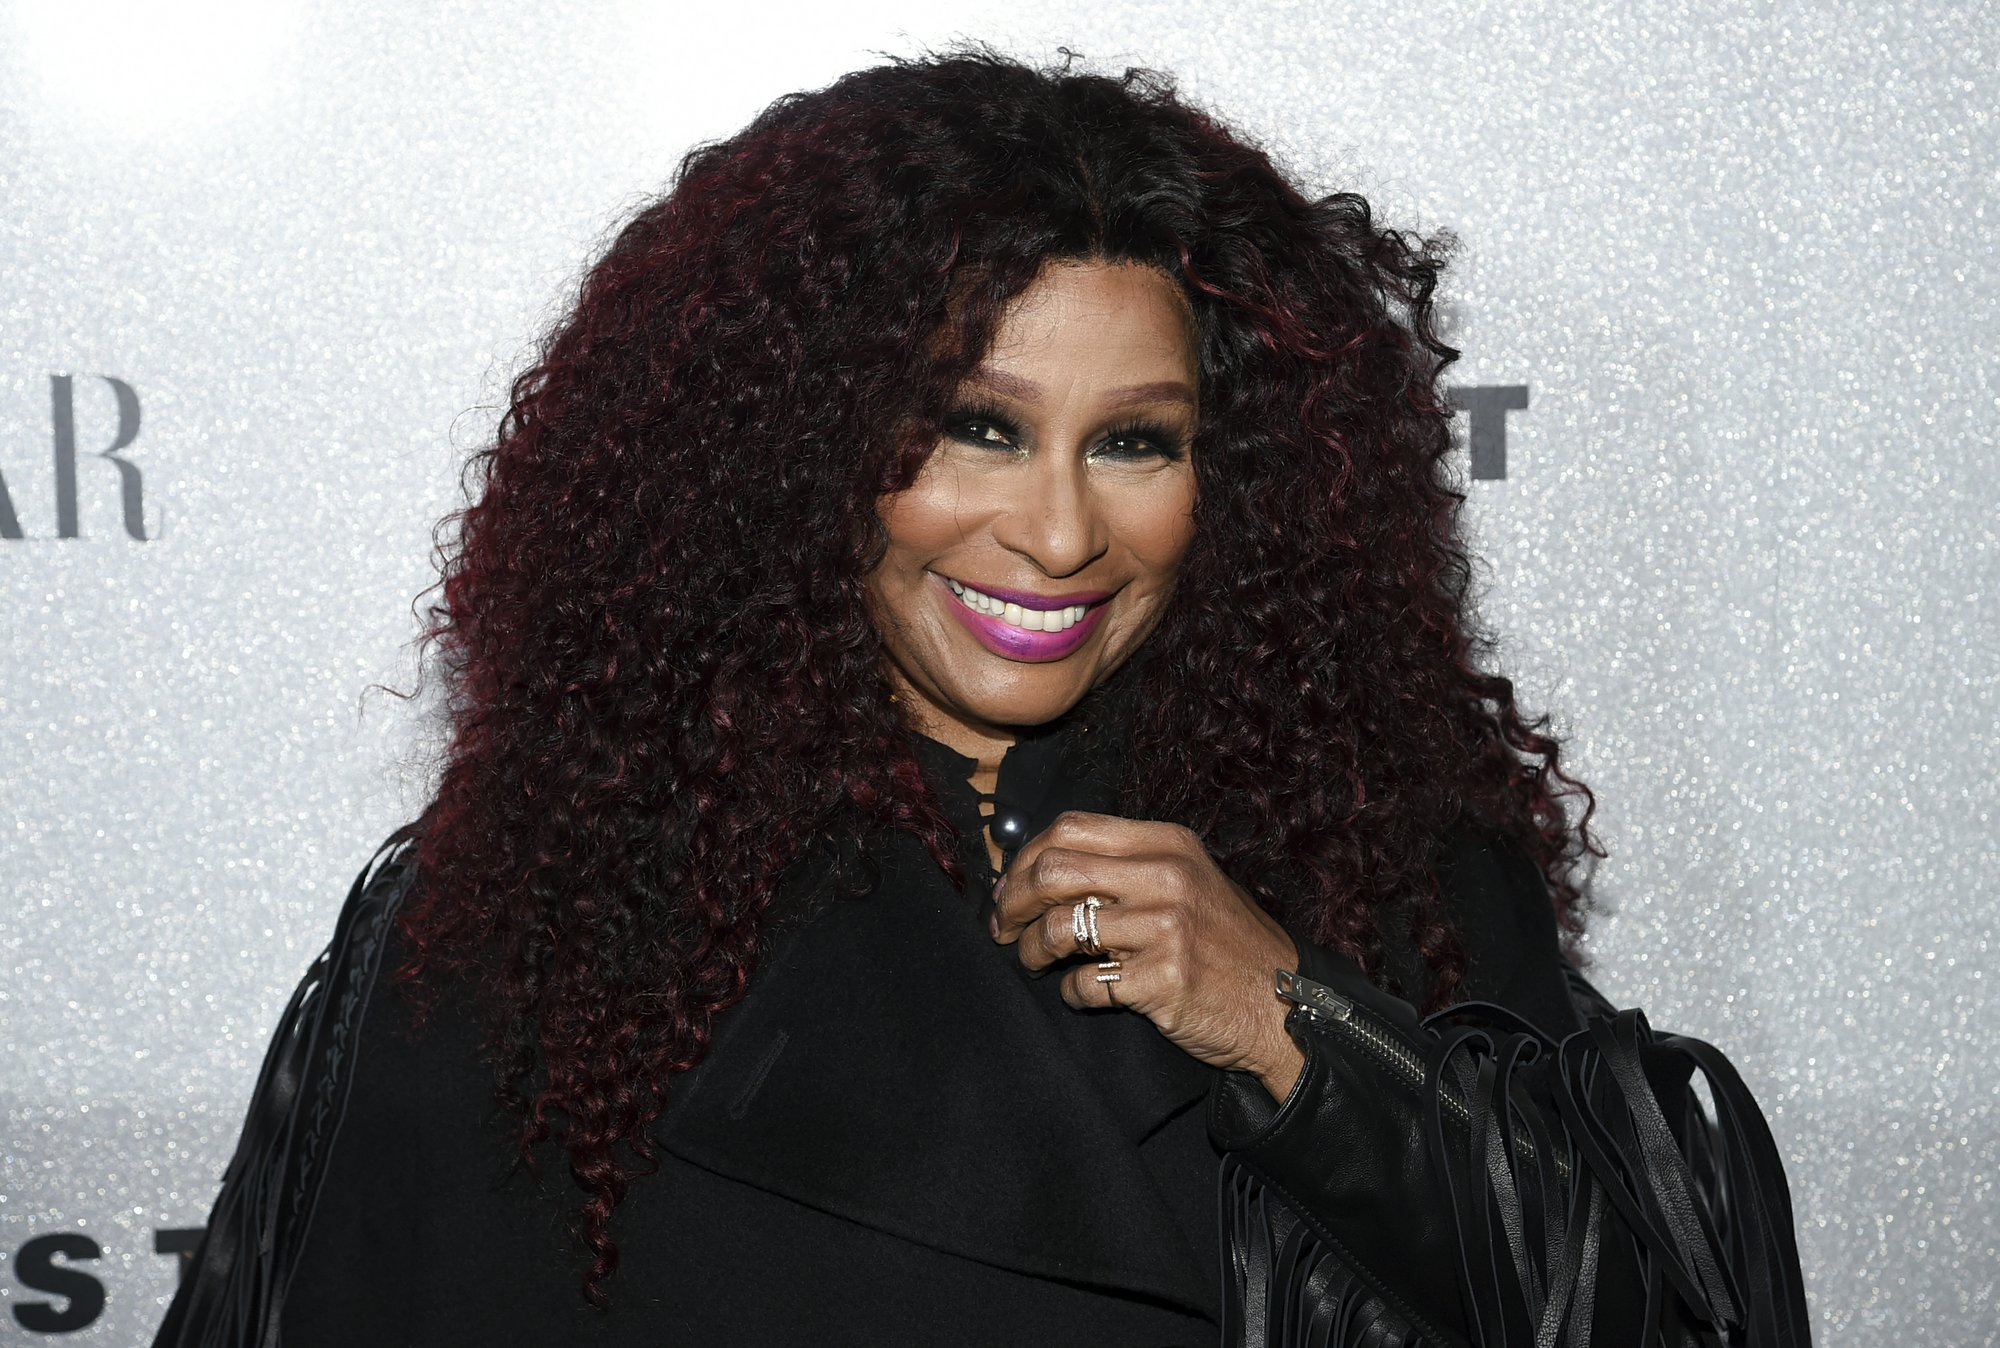 After a decade of dormancy, Chaka Khan blooms again